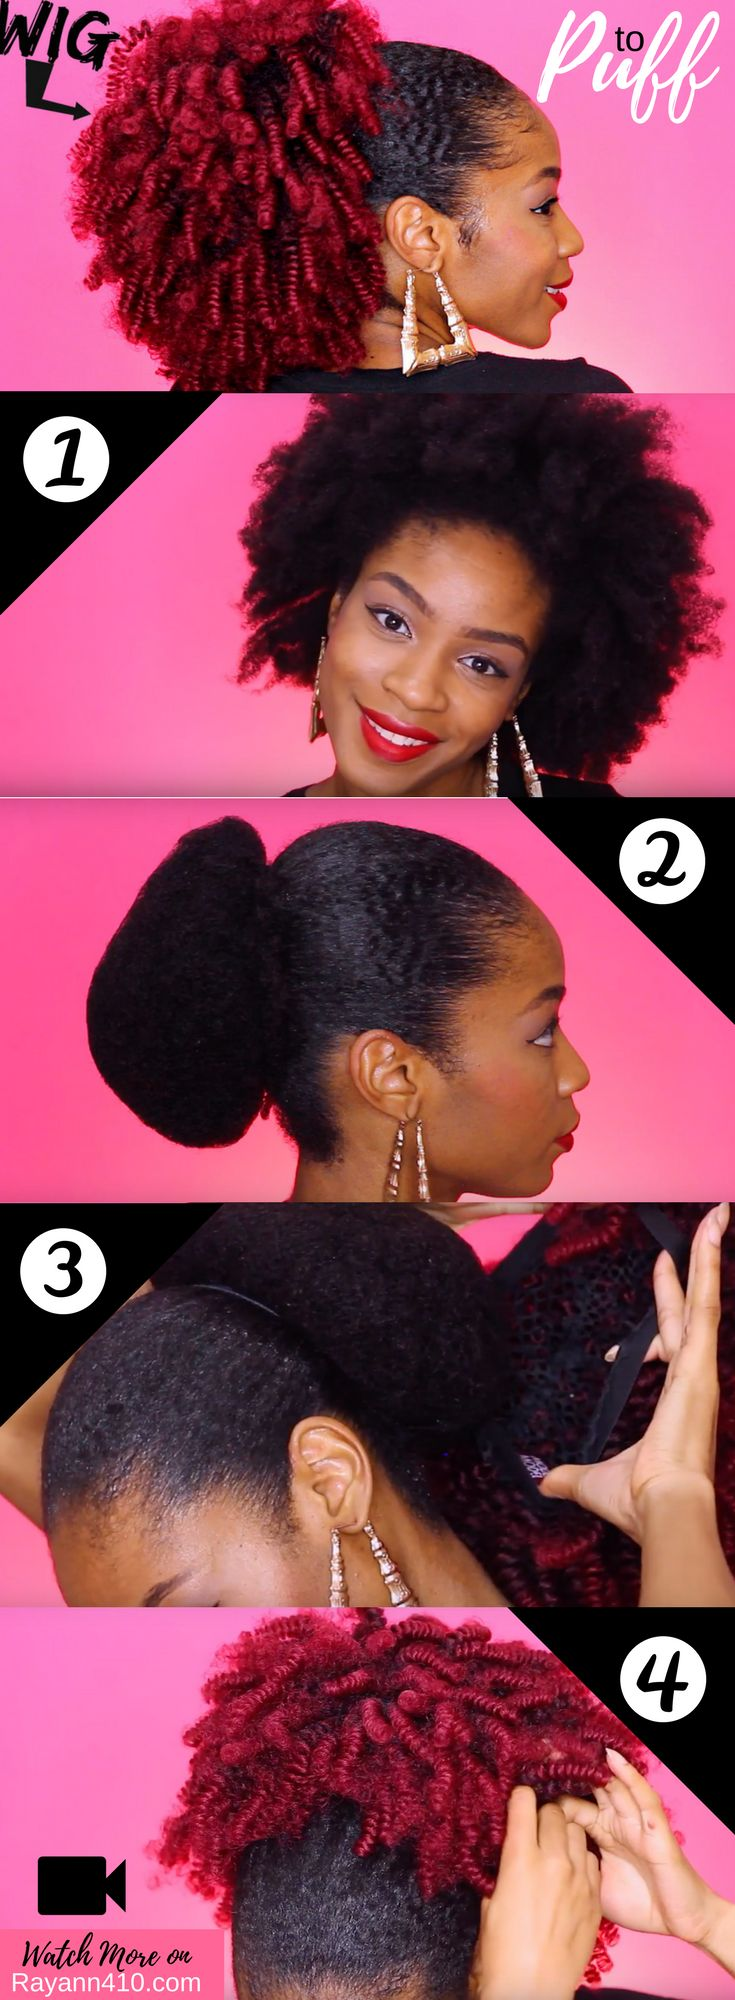 Here's how to turn a wig into a faux ponytail or natural hair puff.  #naturalhair #naturalhairstyles  #naturalhairmag  #naturalhaircommunity